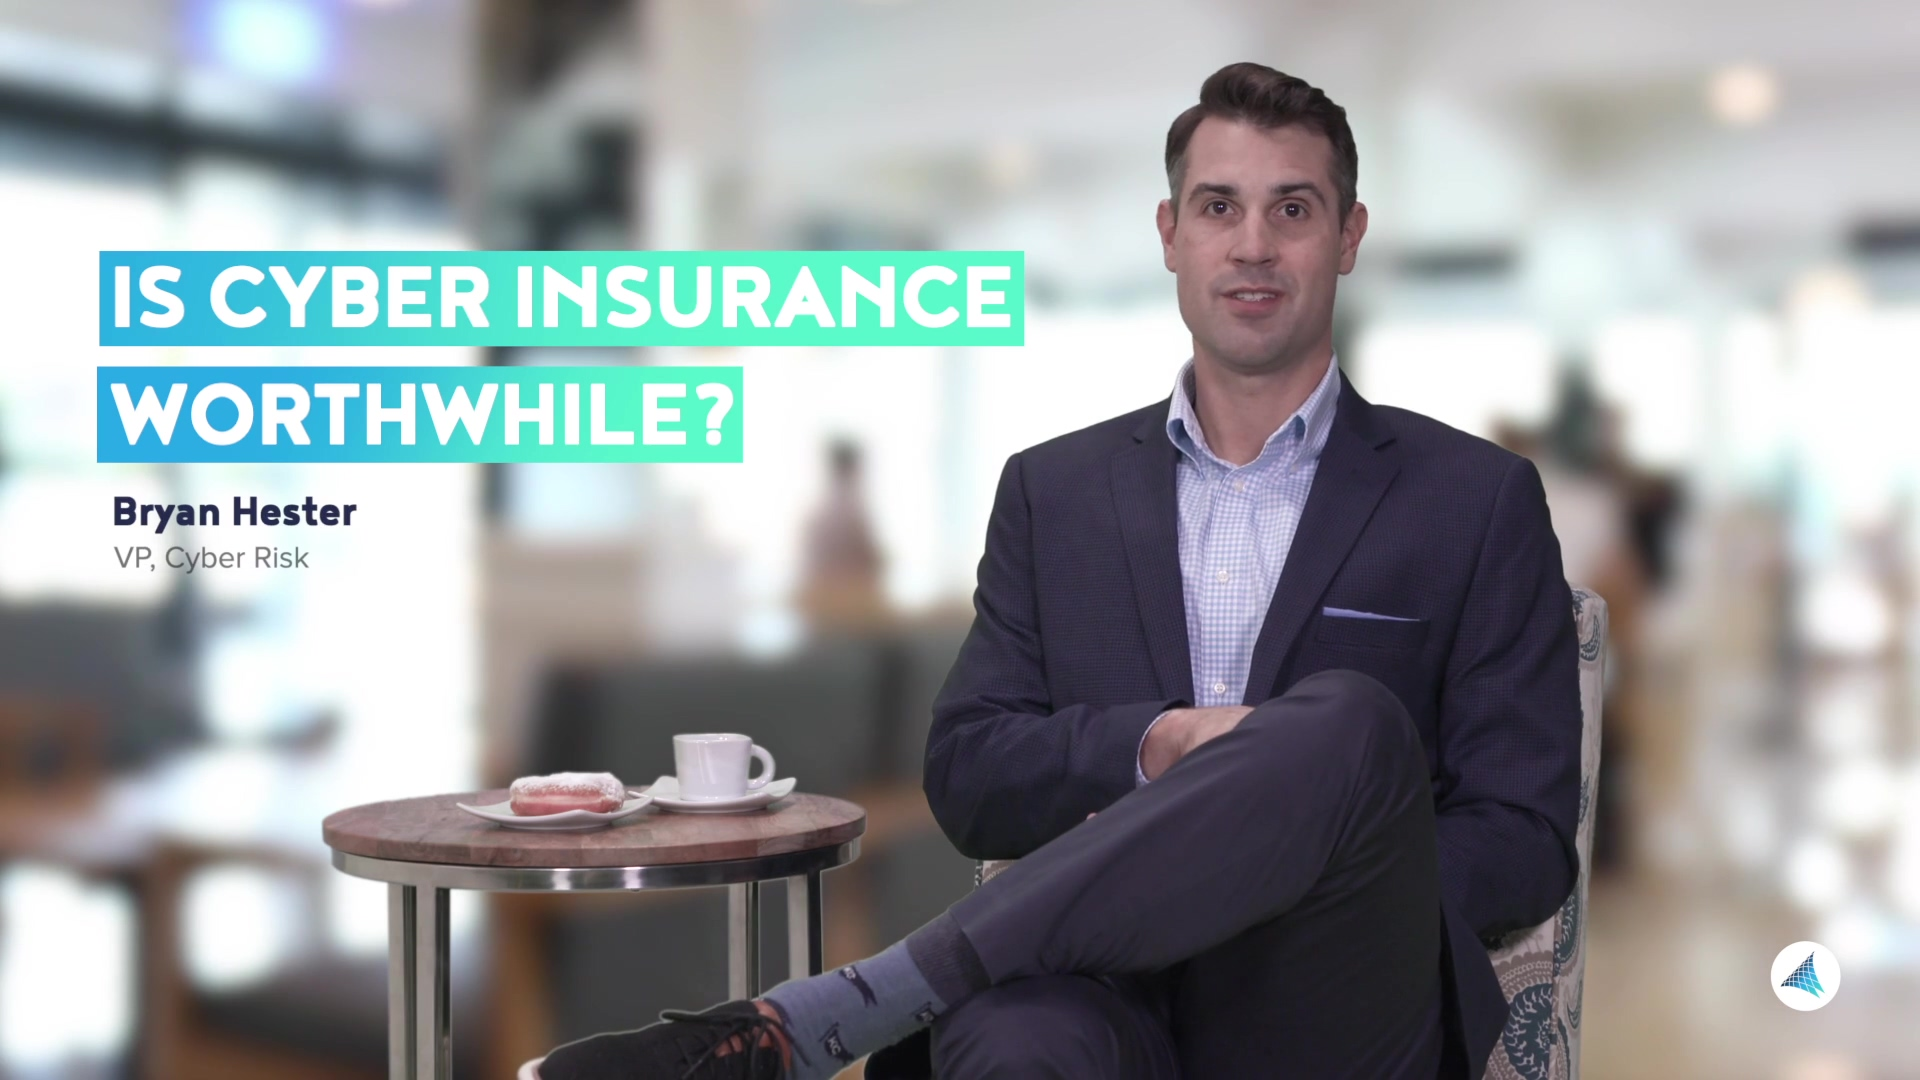 WHAT IS CYBER INSURANCE AND IS IT WORTHWHILE_